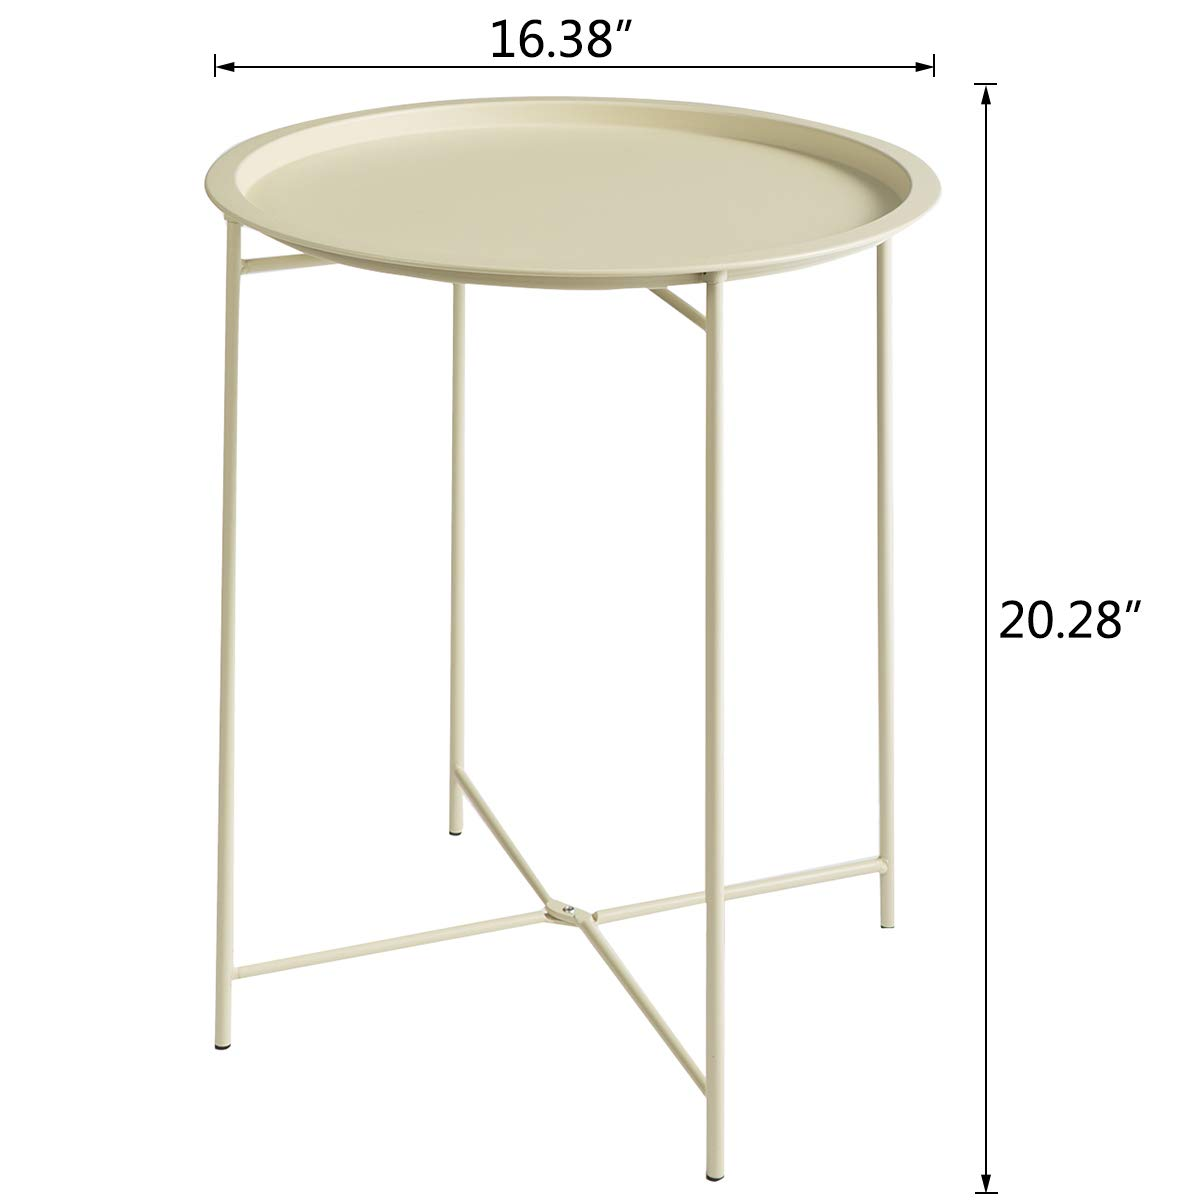 White round folding metal tray table.